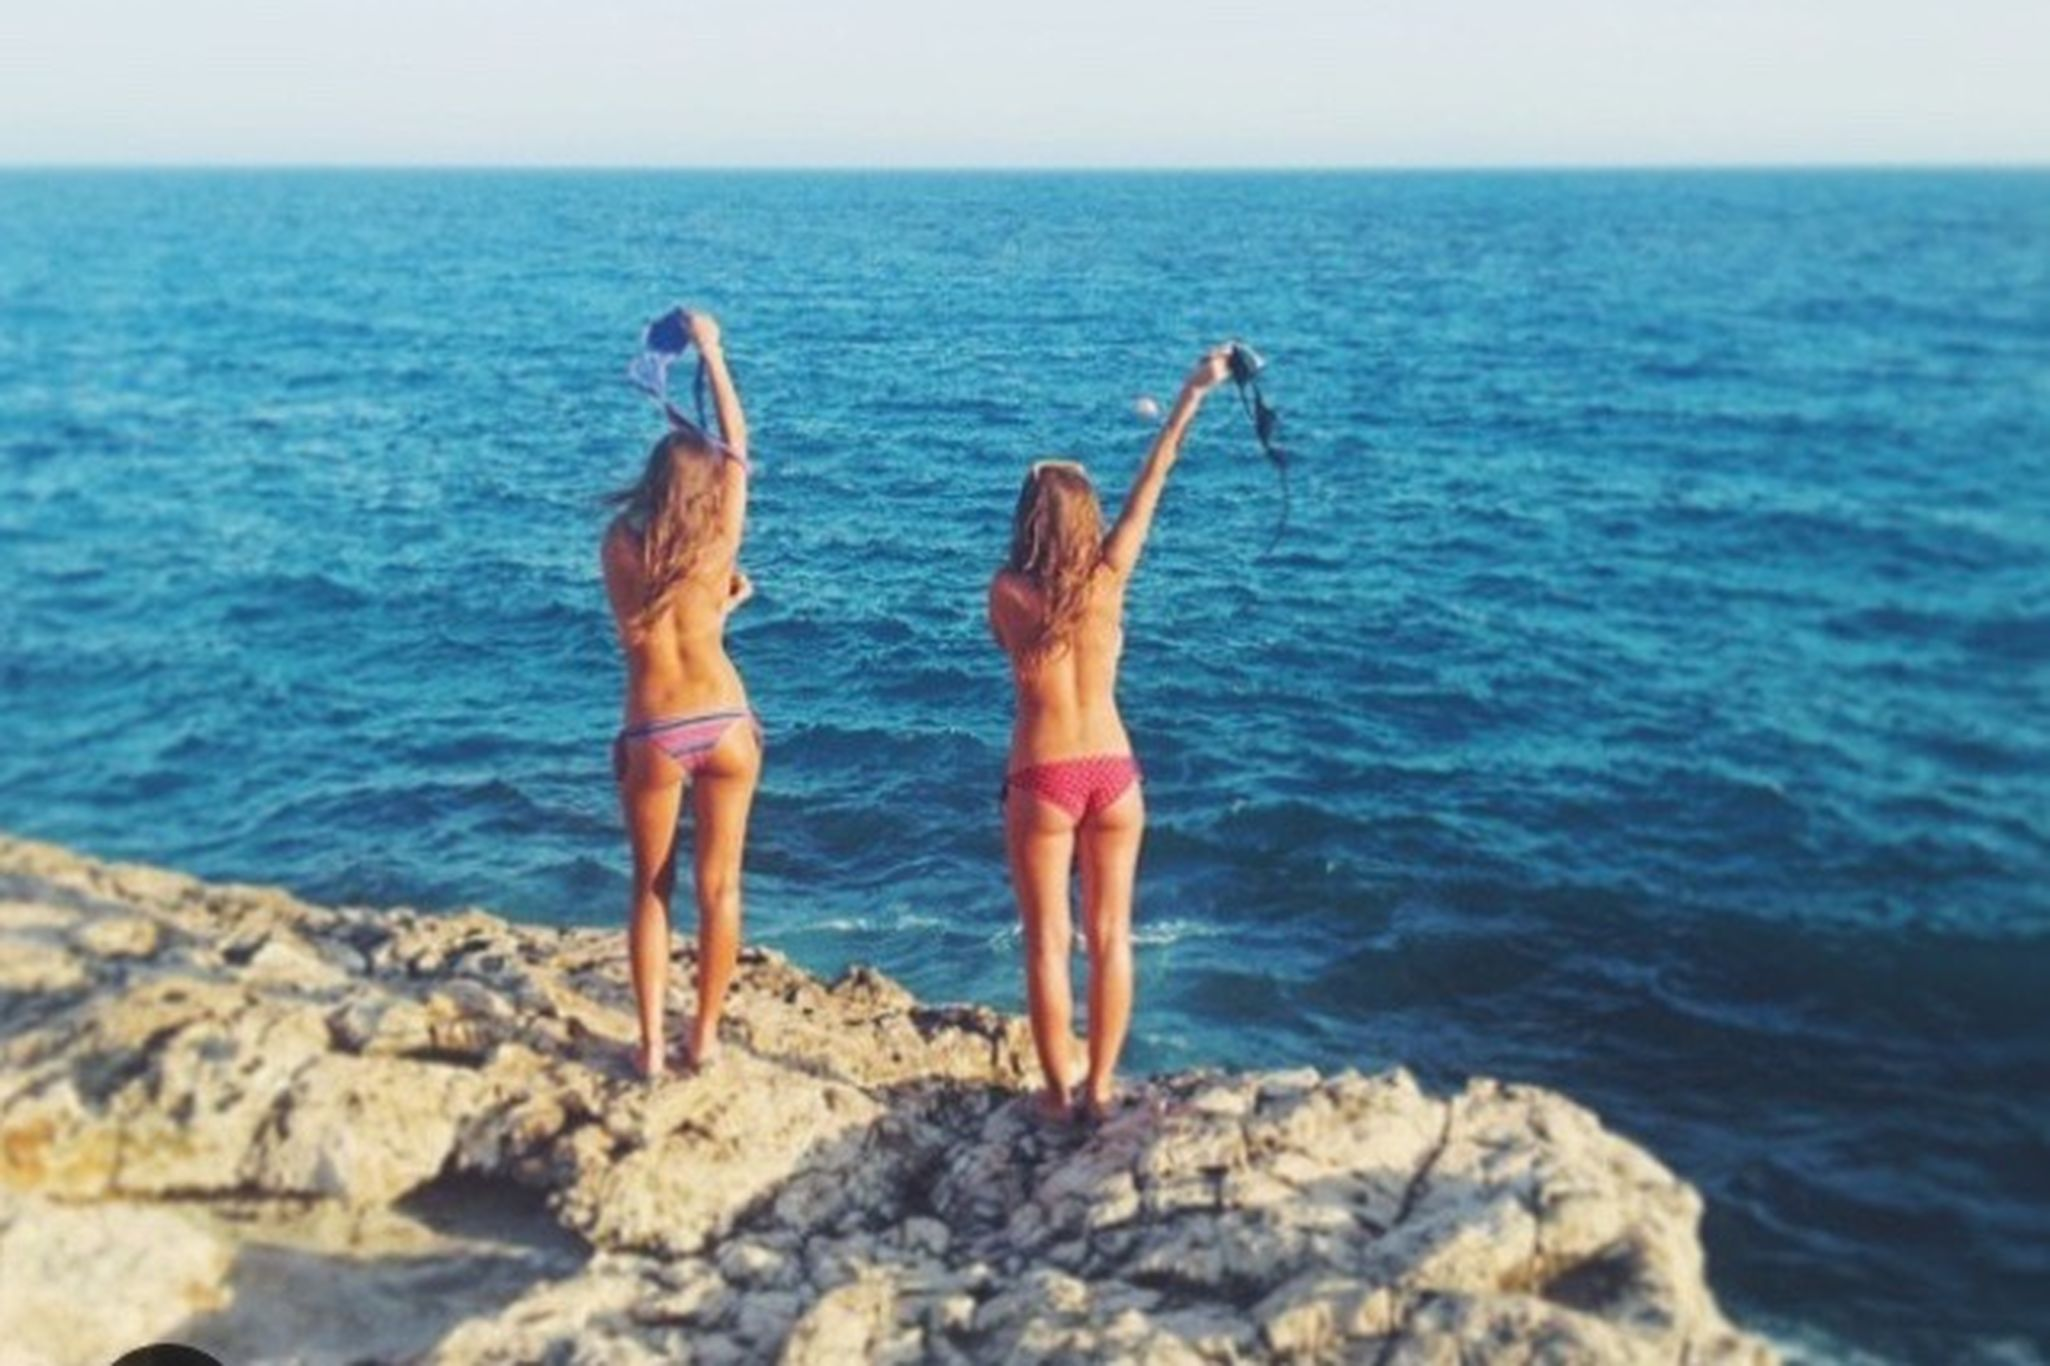 People And Places Girls Summertime Crazy Holidays Love Holiday Cyprus